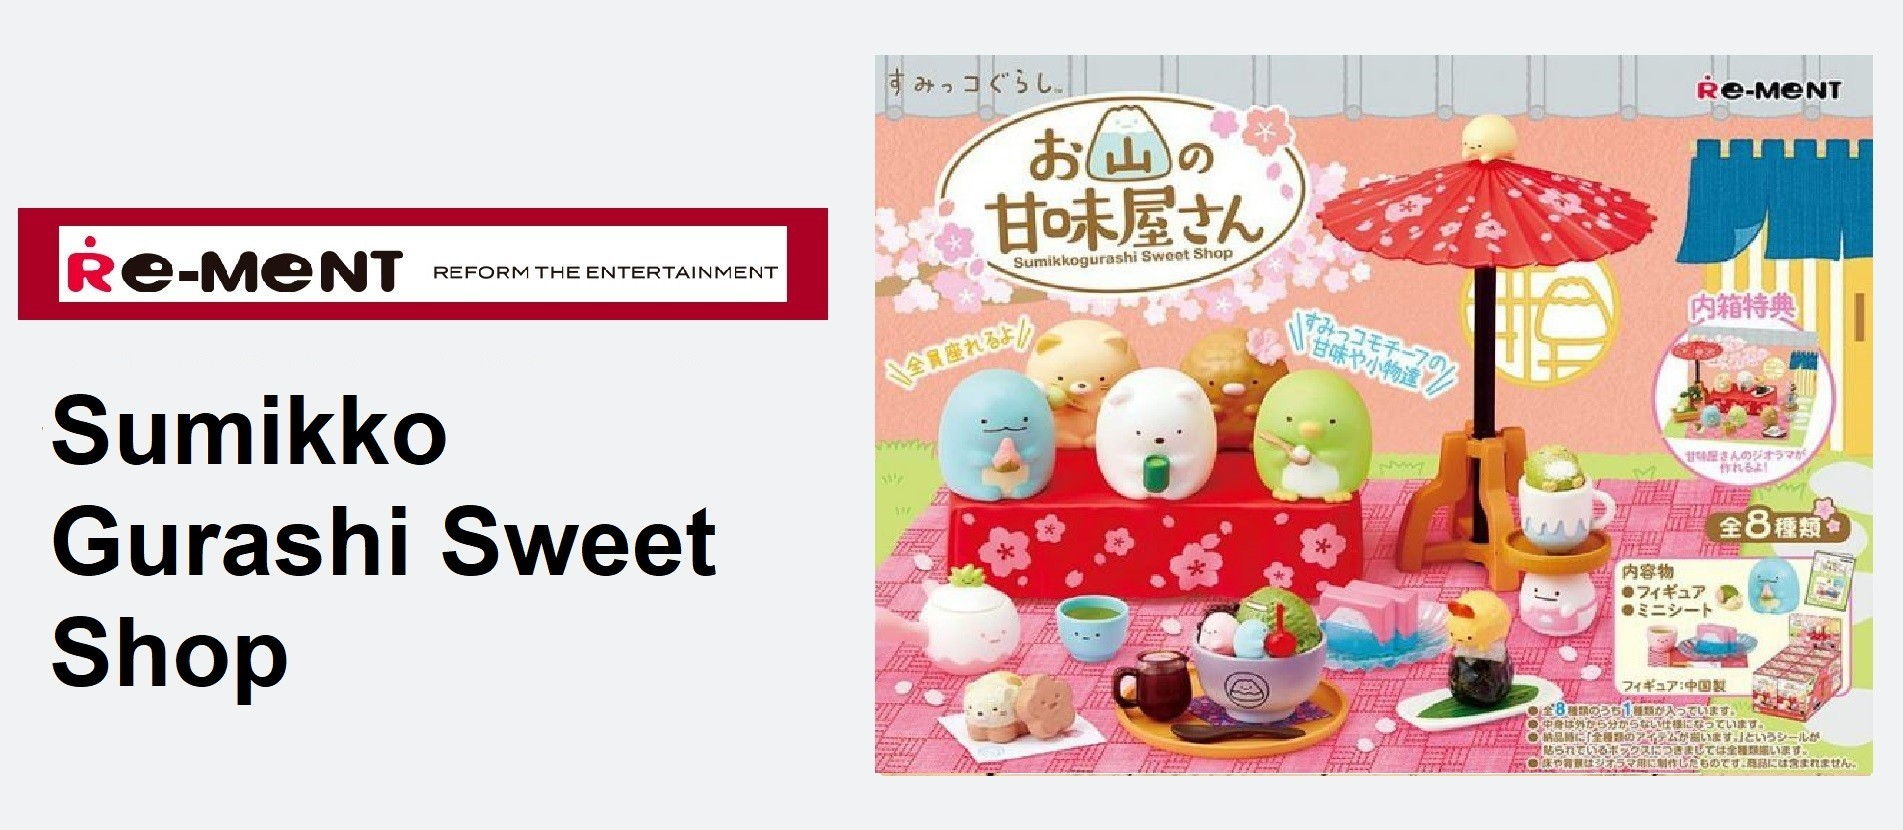 Sumikko Gurashi Sweet Shop